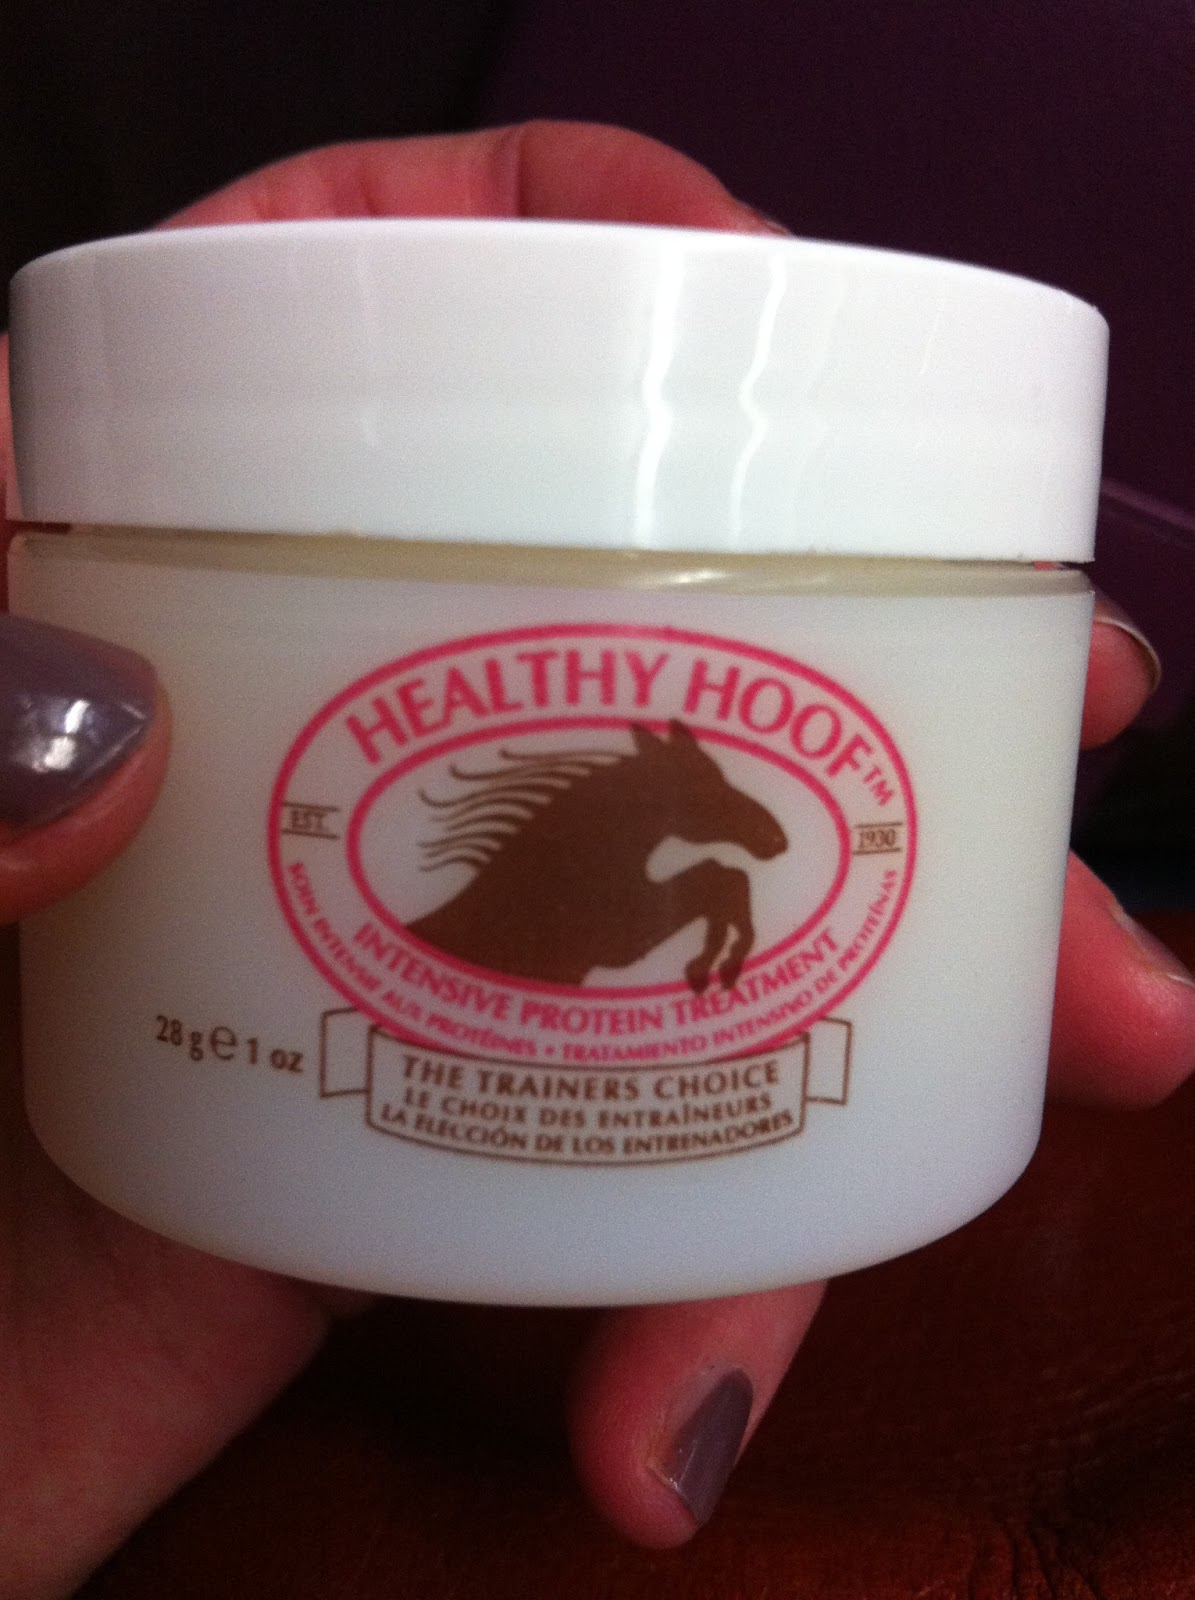 Blogging in Pyjamas: Healthy Hoof Nail Treatment - A Review